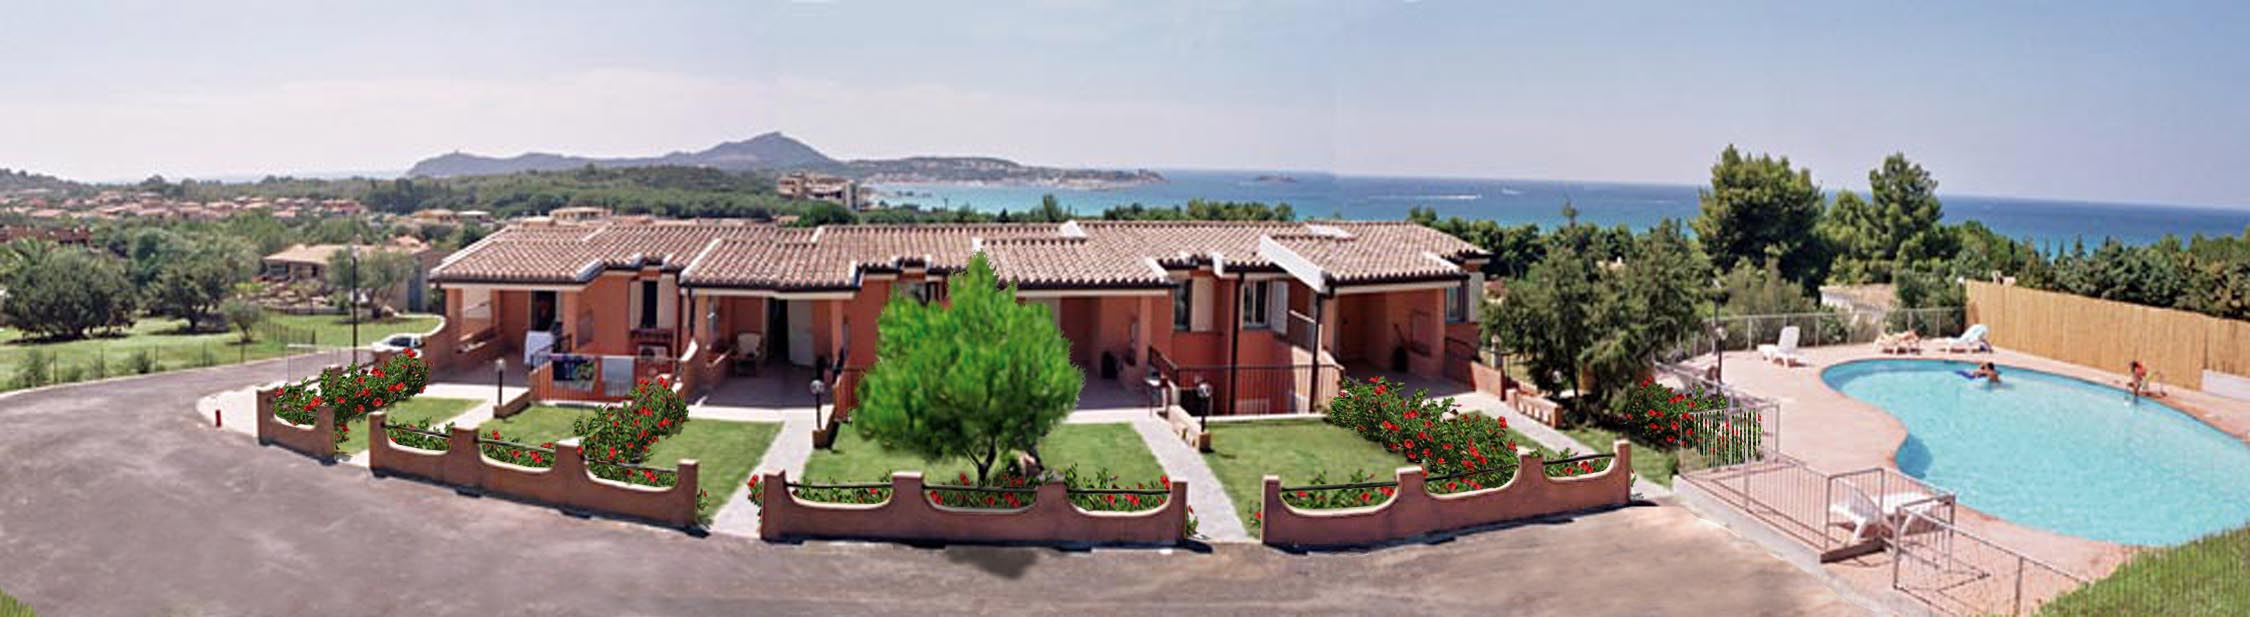 Detatched houses of the Residence la chimera in Villasimius, for a relaxing holidays in Sardinia